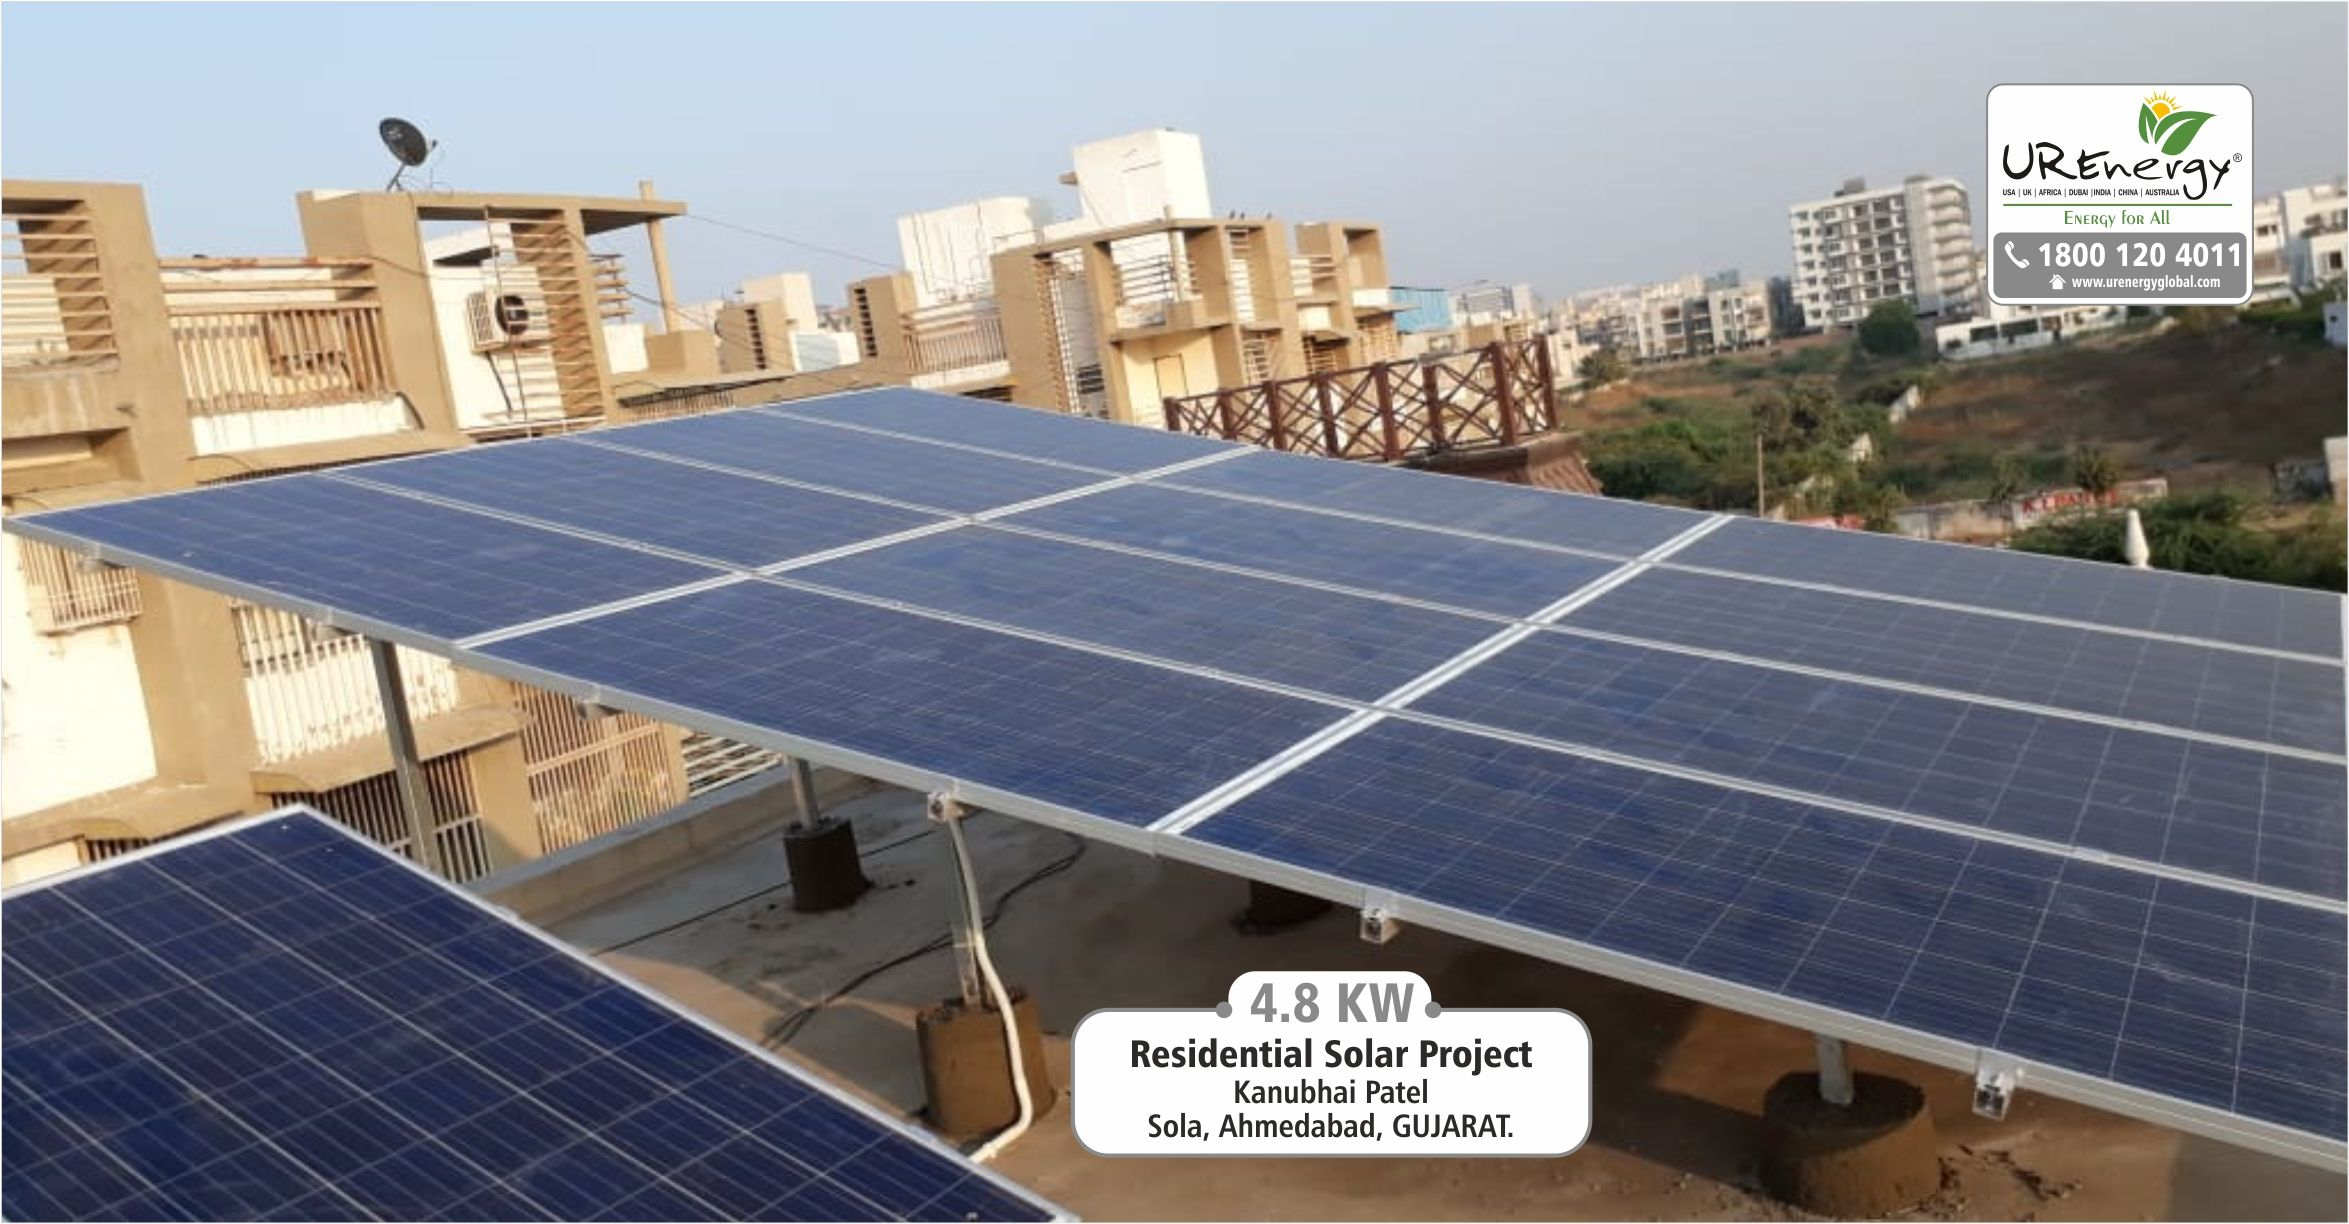 4 8 Kw Residential Rooftop Solar Panel Installed By U R Energy Team At Ahmedabad Gujarat India Residential Commer Solar Solar Water Pump Solar Panels